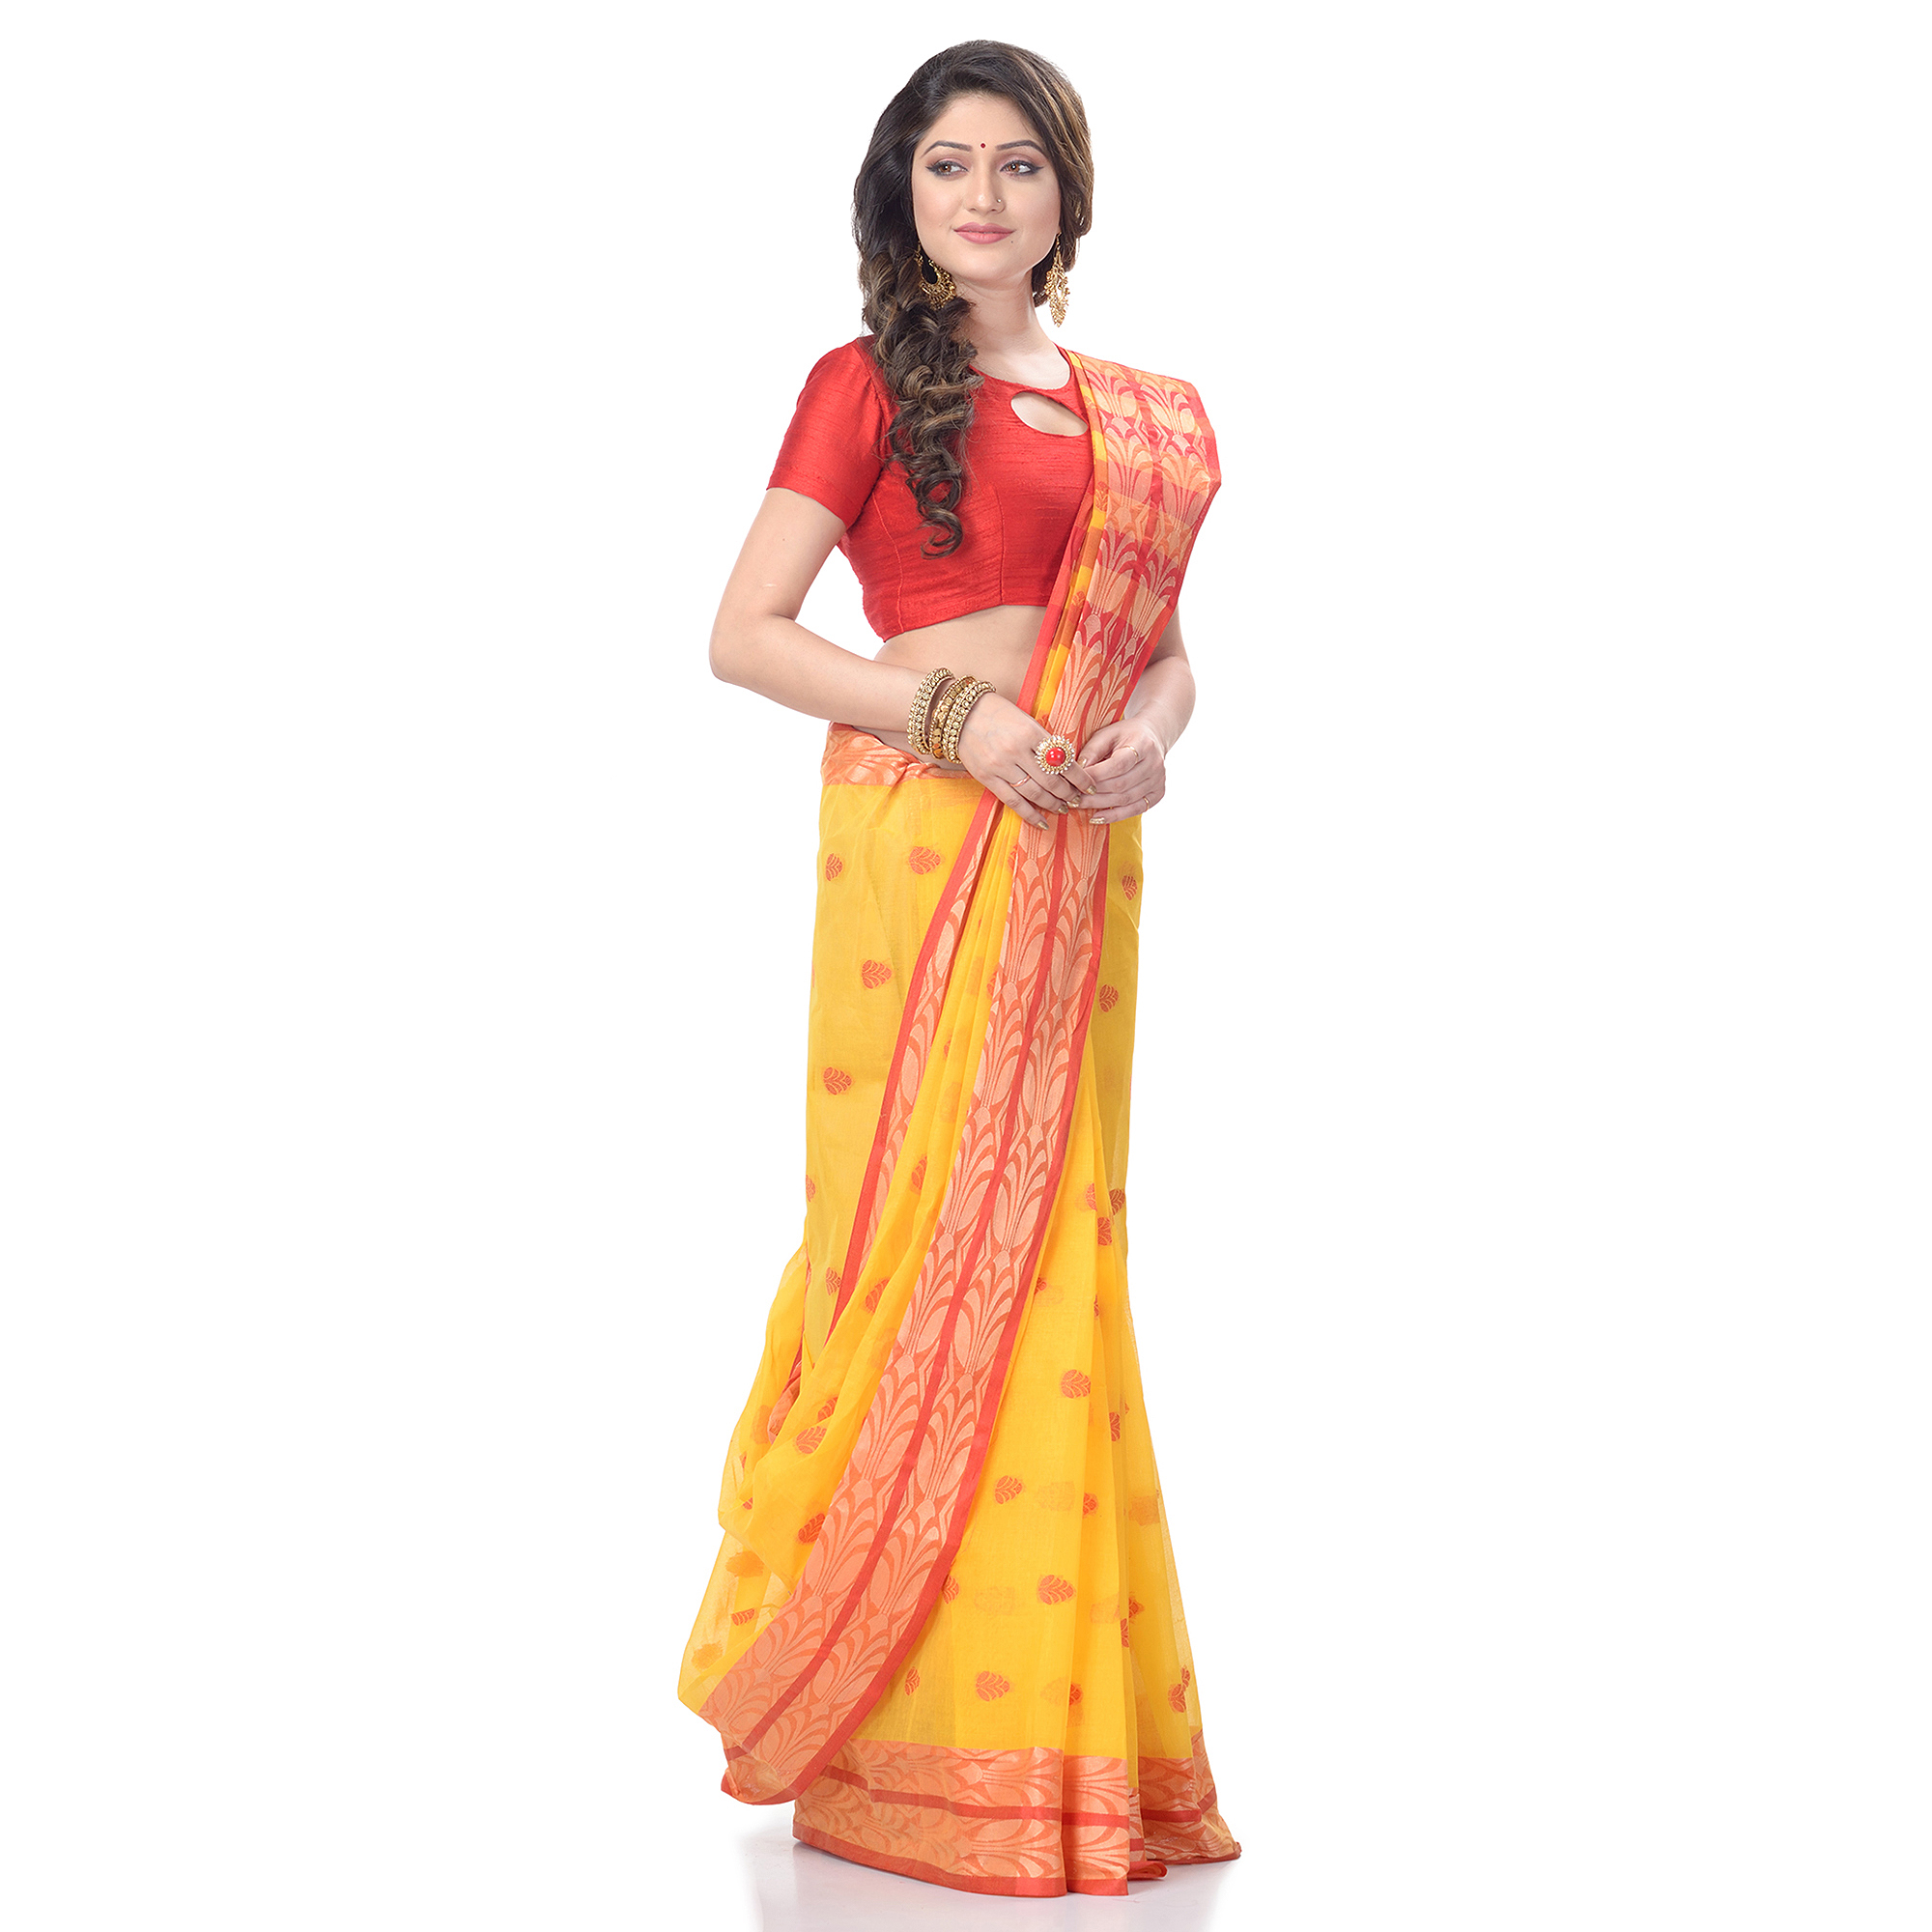 DESH BIDESH Women`s Bengal Tant Woven Potrobinnas Design Pure Handloom Cotton Saree Without Blouse Piece (Yellow)